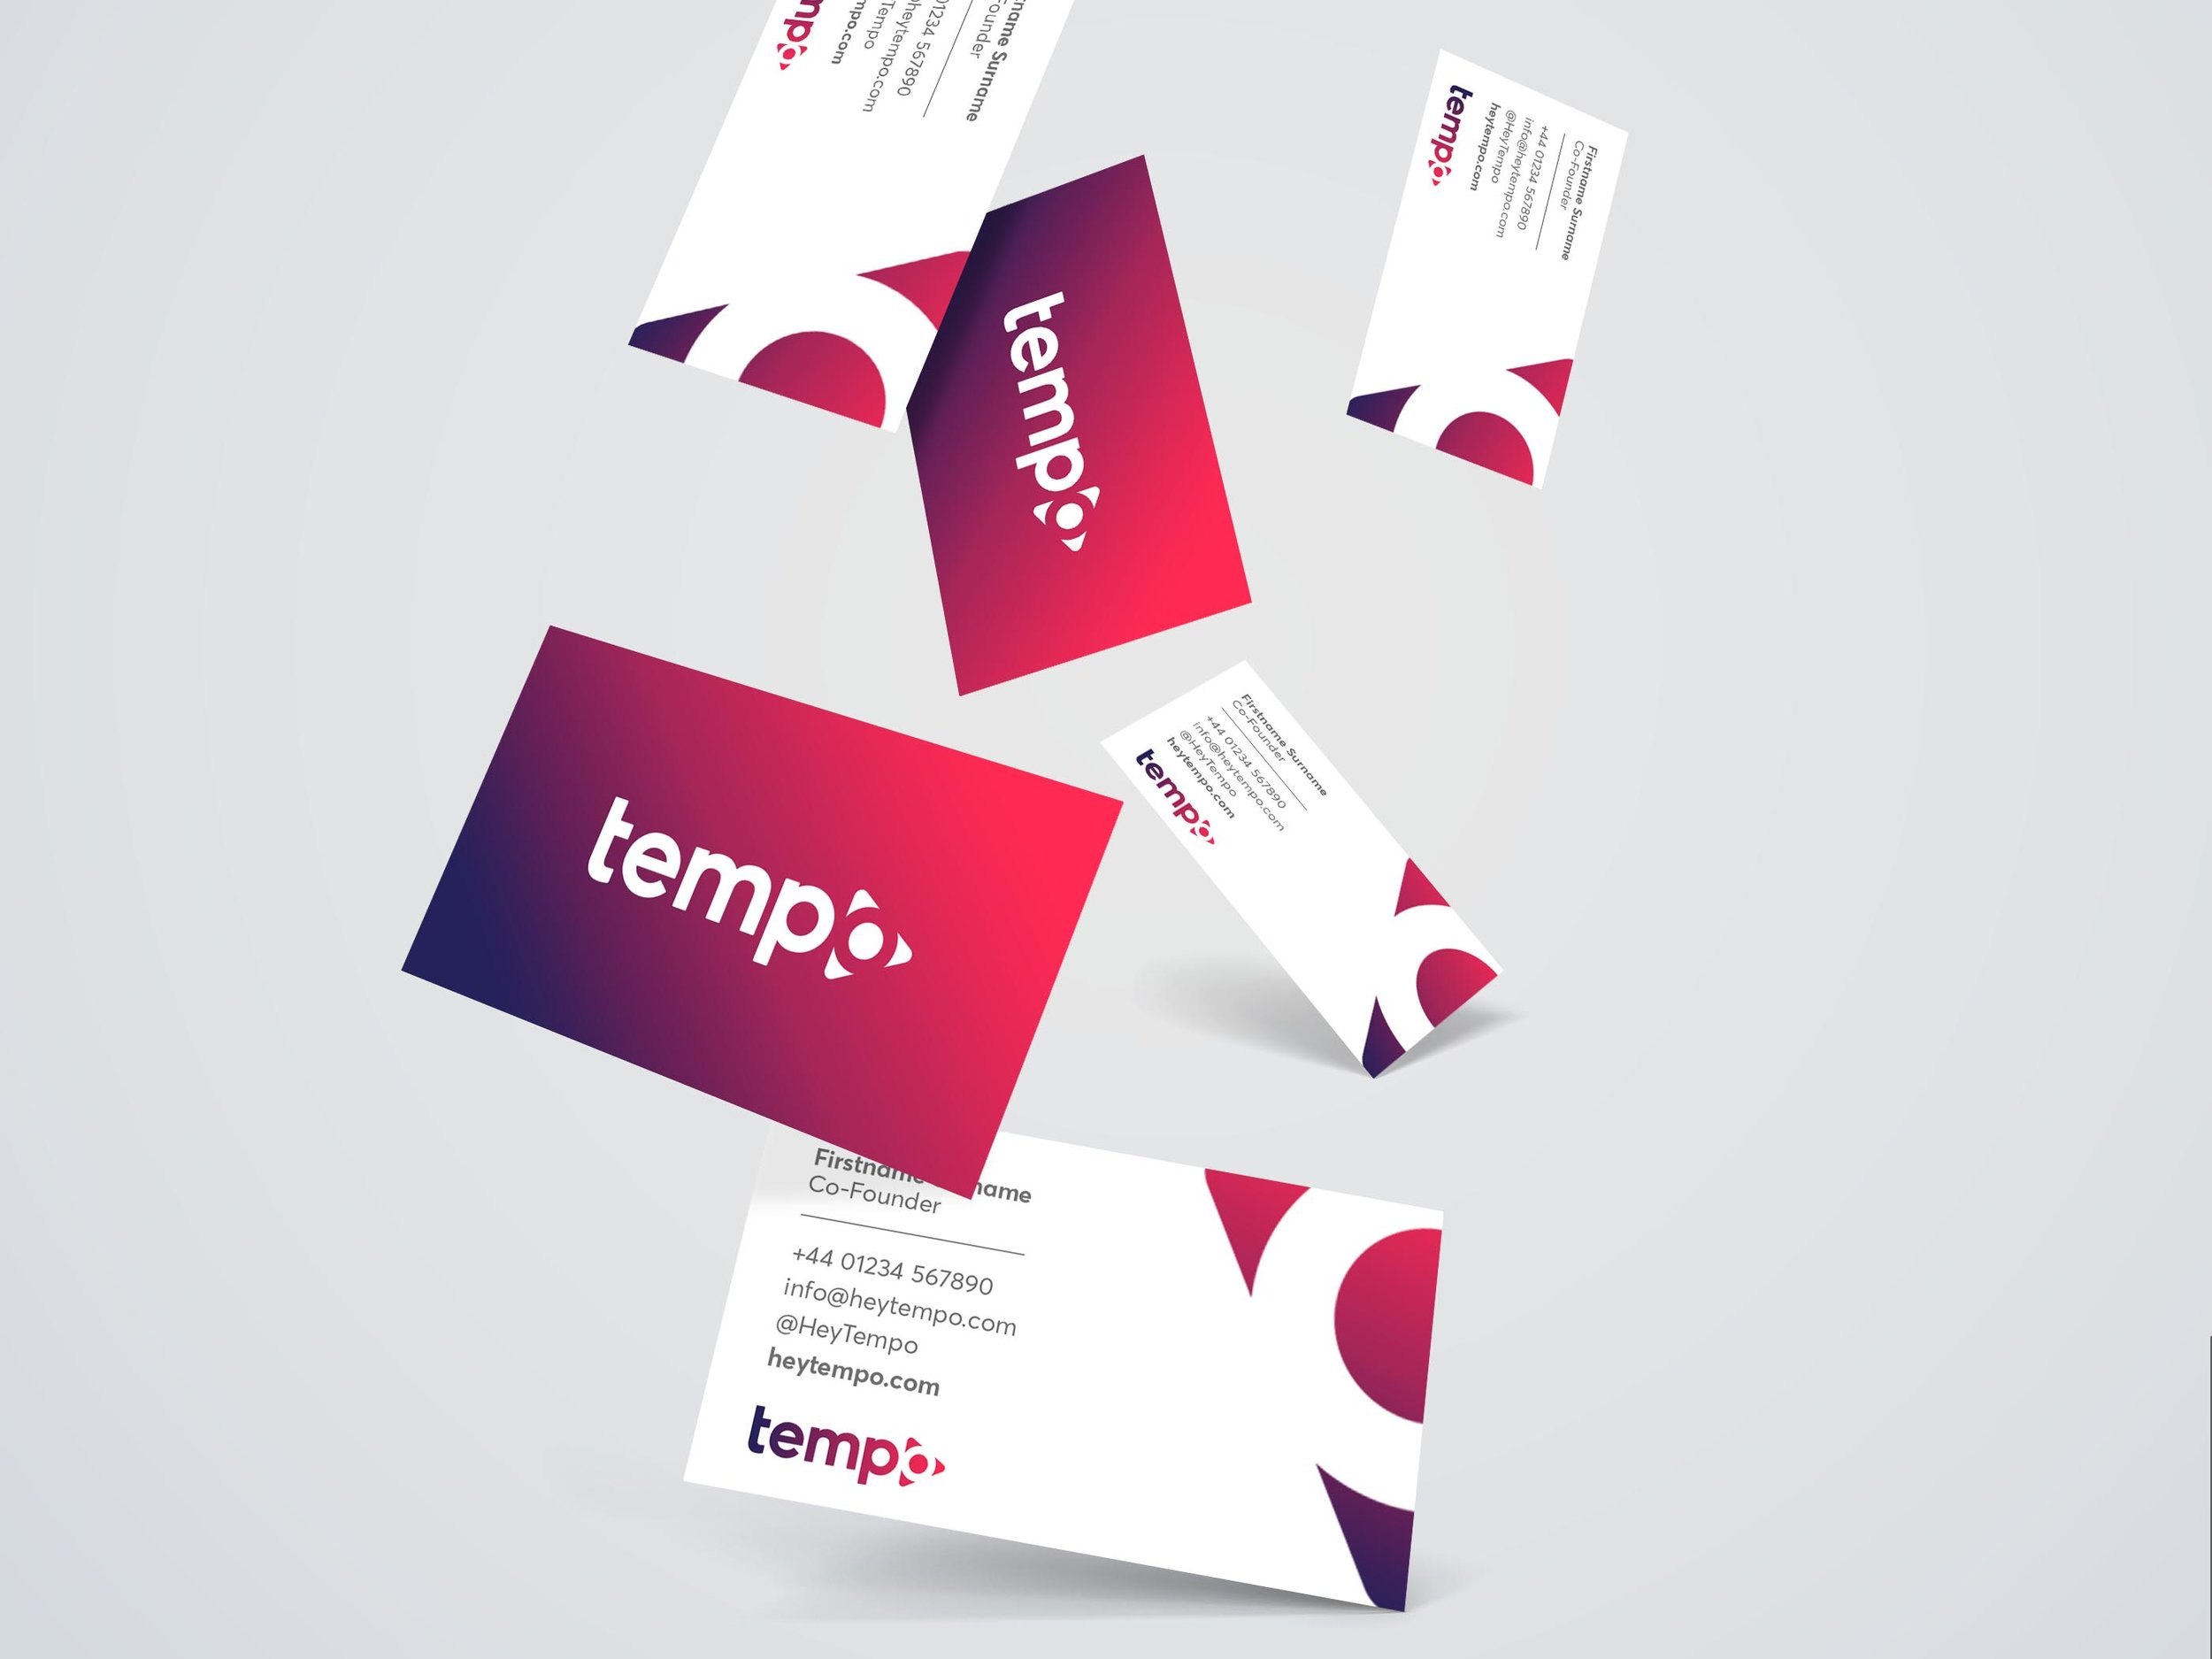 Tempo Business Cards_S01.jpg